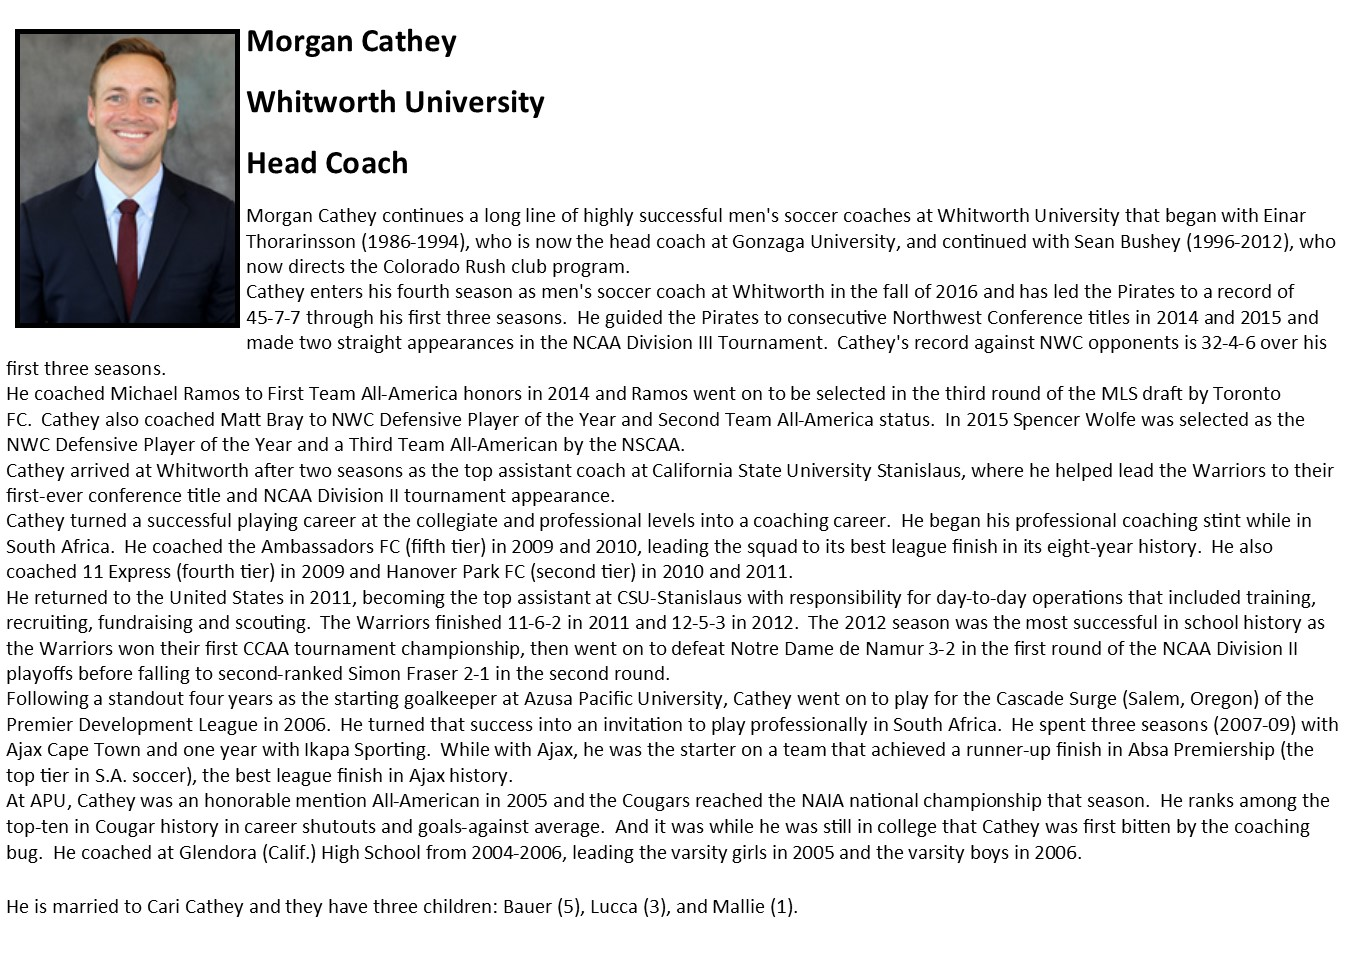 Morgan Cathey Bio